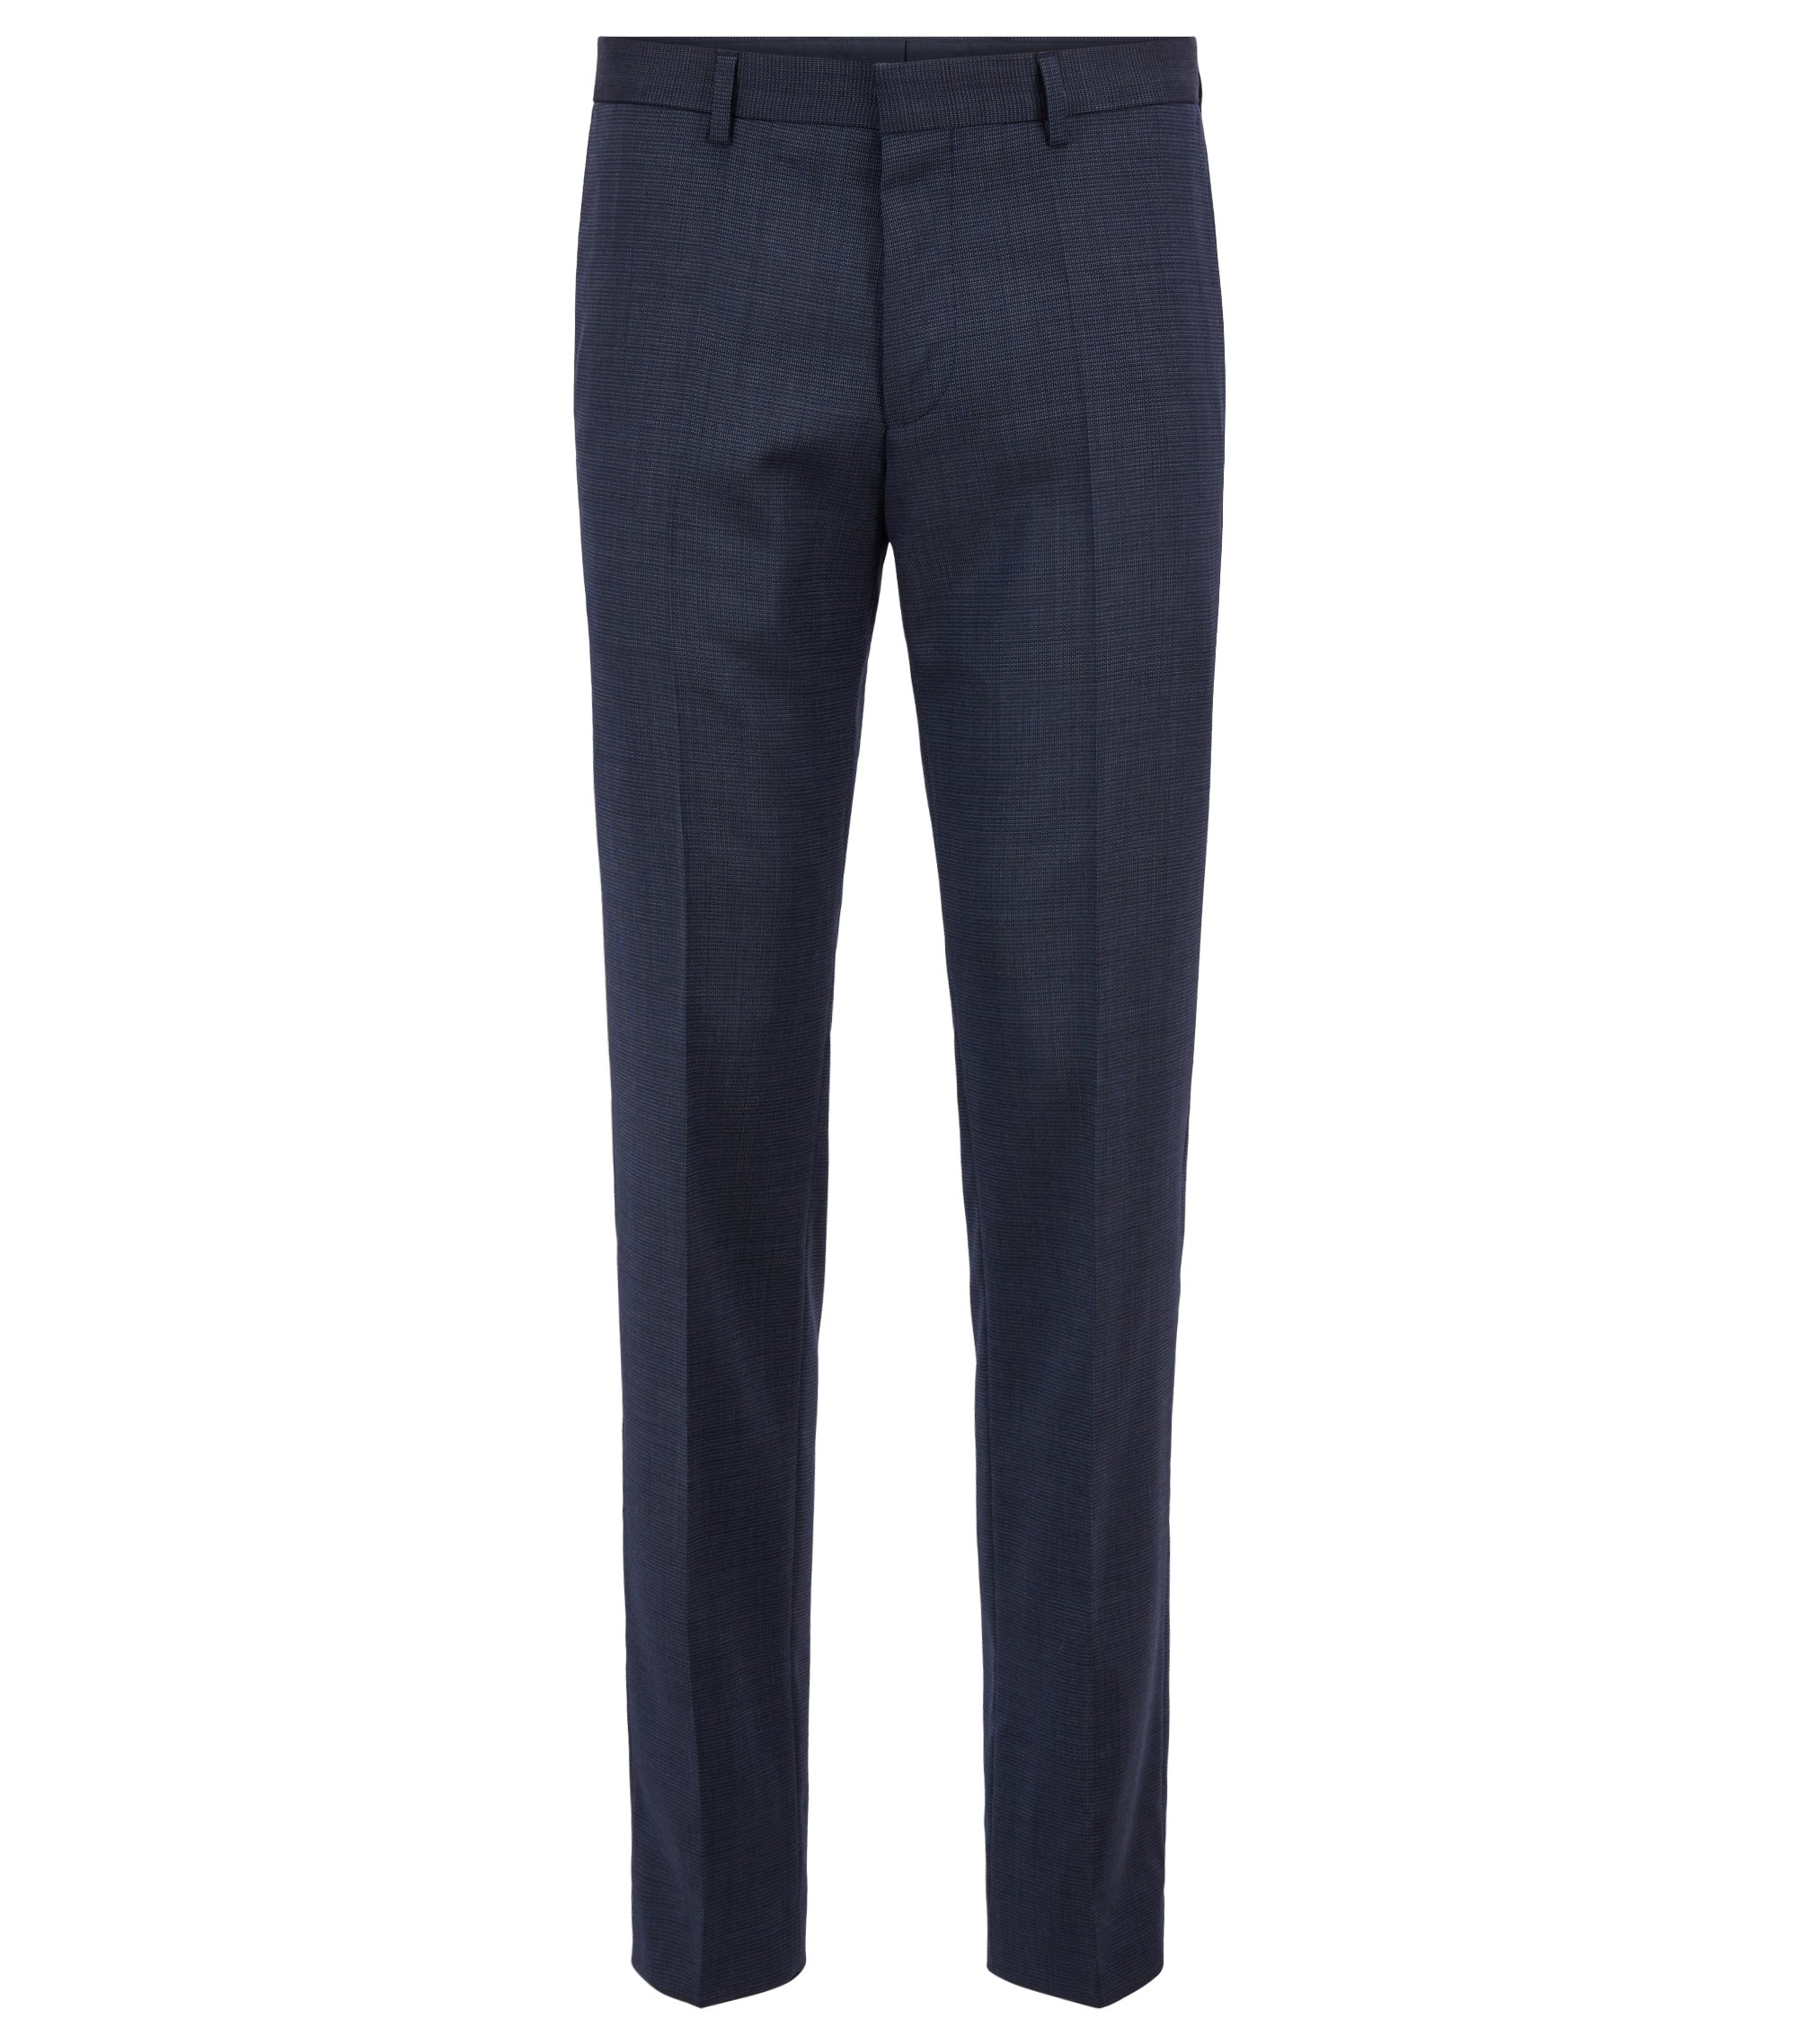 Pantalon Slim Fit en laine, aux finitions en ruban ripstop, Bleu